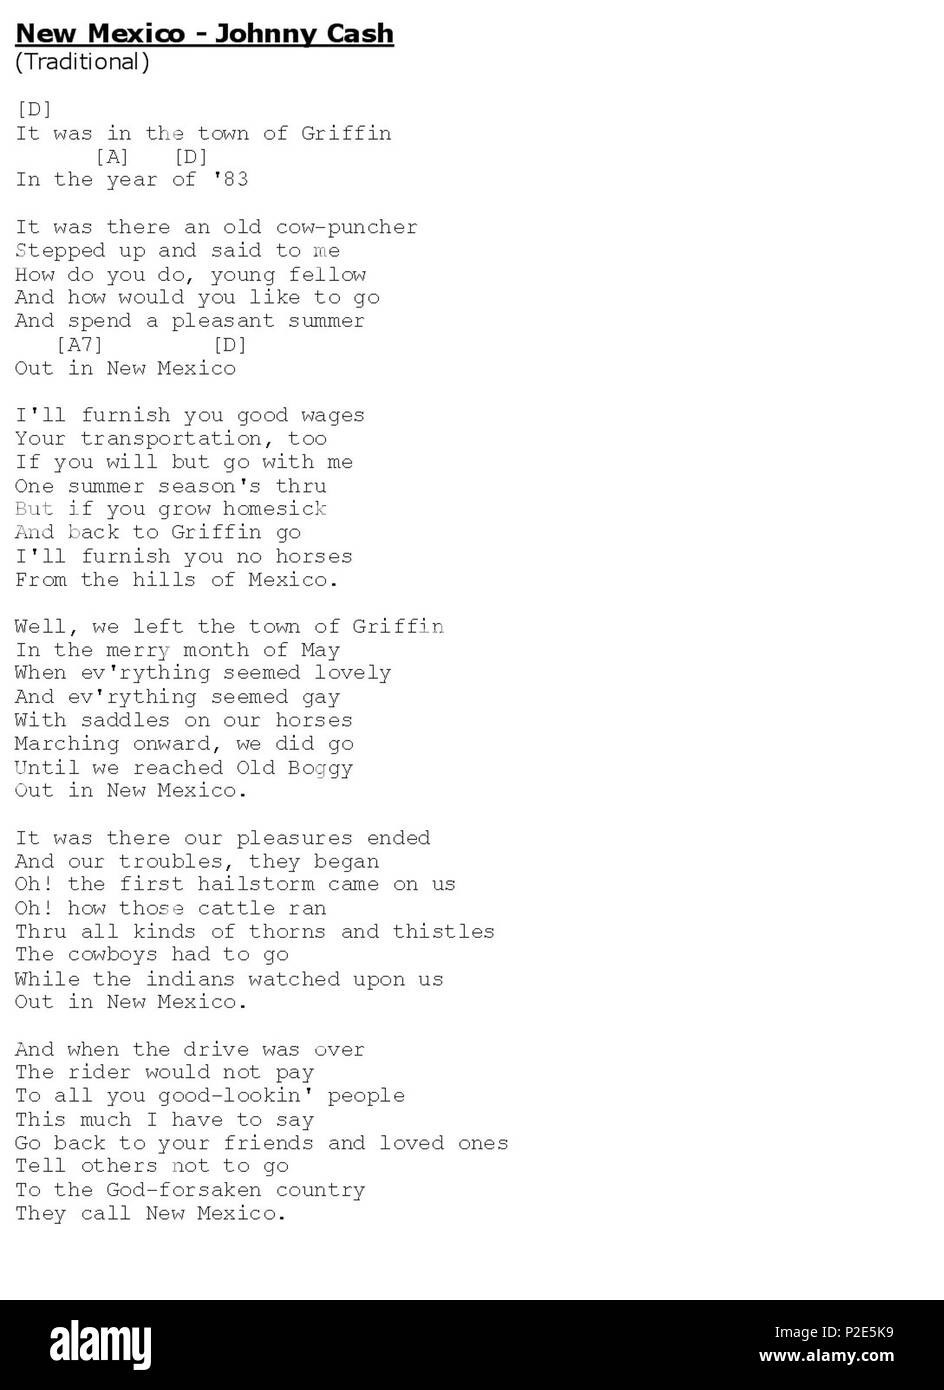 Song Tune Lyrics Stock Photos & Song Tune Lyrics Stock Images - Alamy